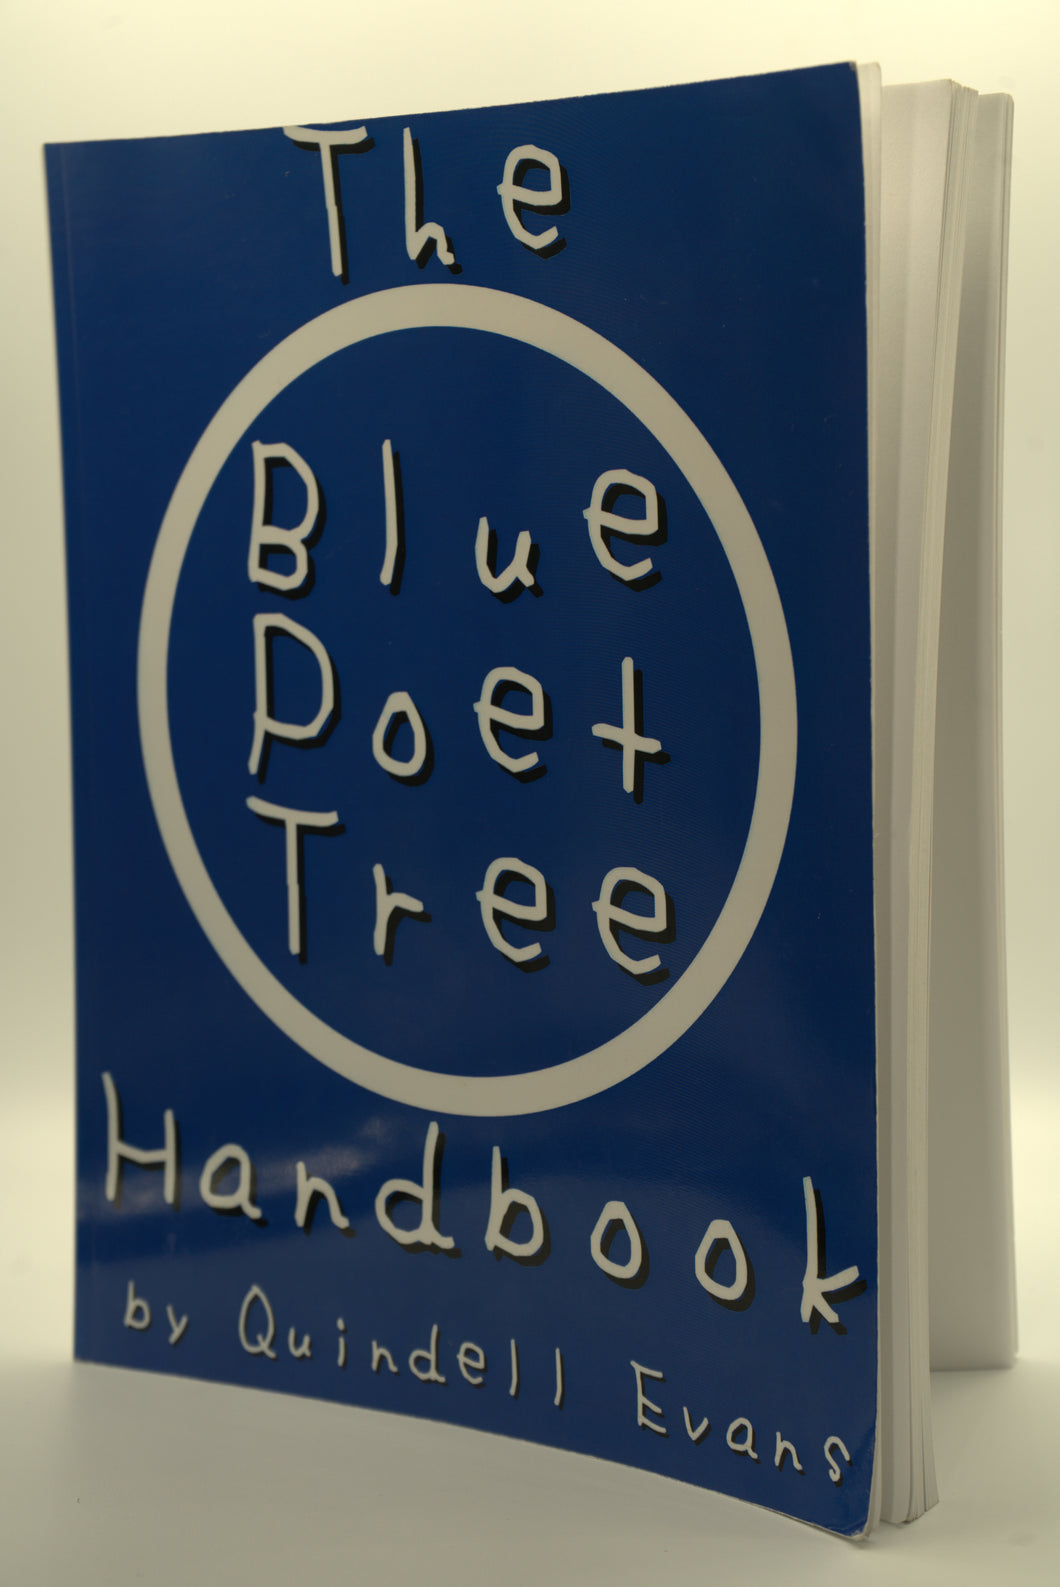 The Blue Poet Tree Handbook